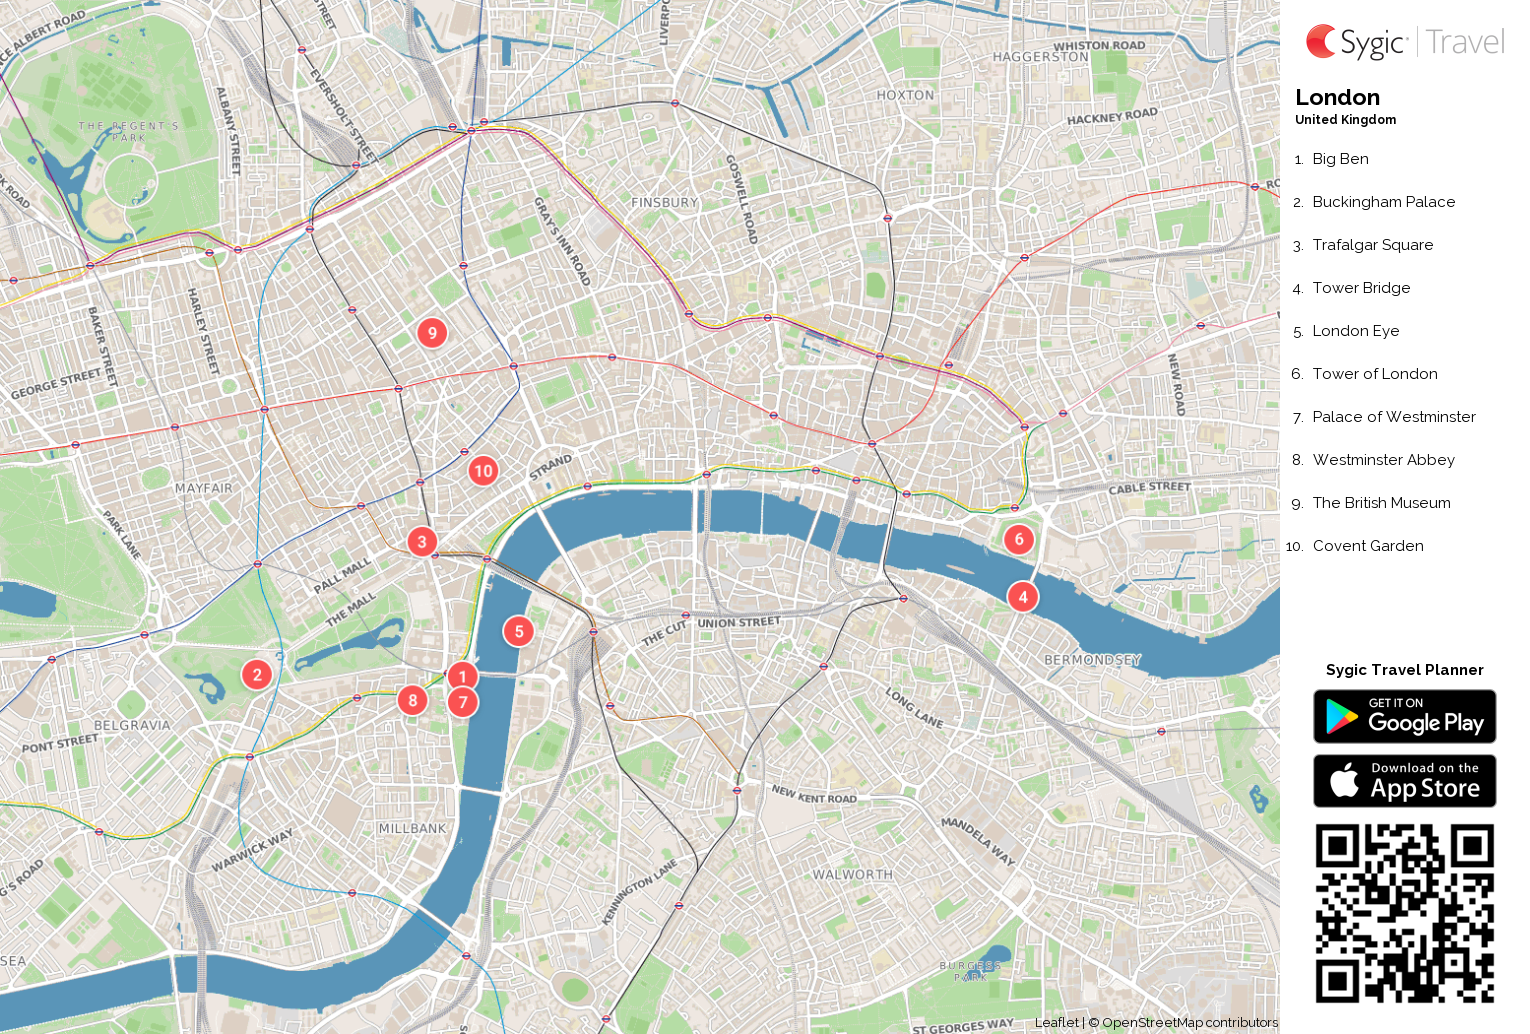 Printable Tourist Map Of London.London Printable Tourist Map In 2019 Free Tourist Maps